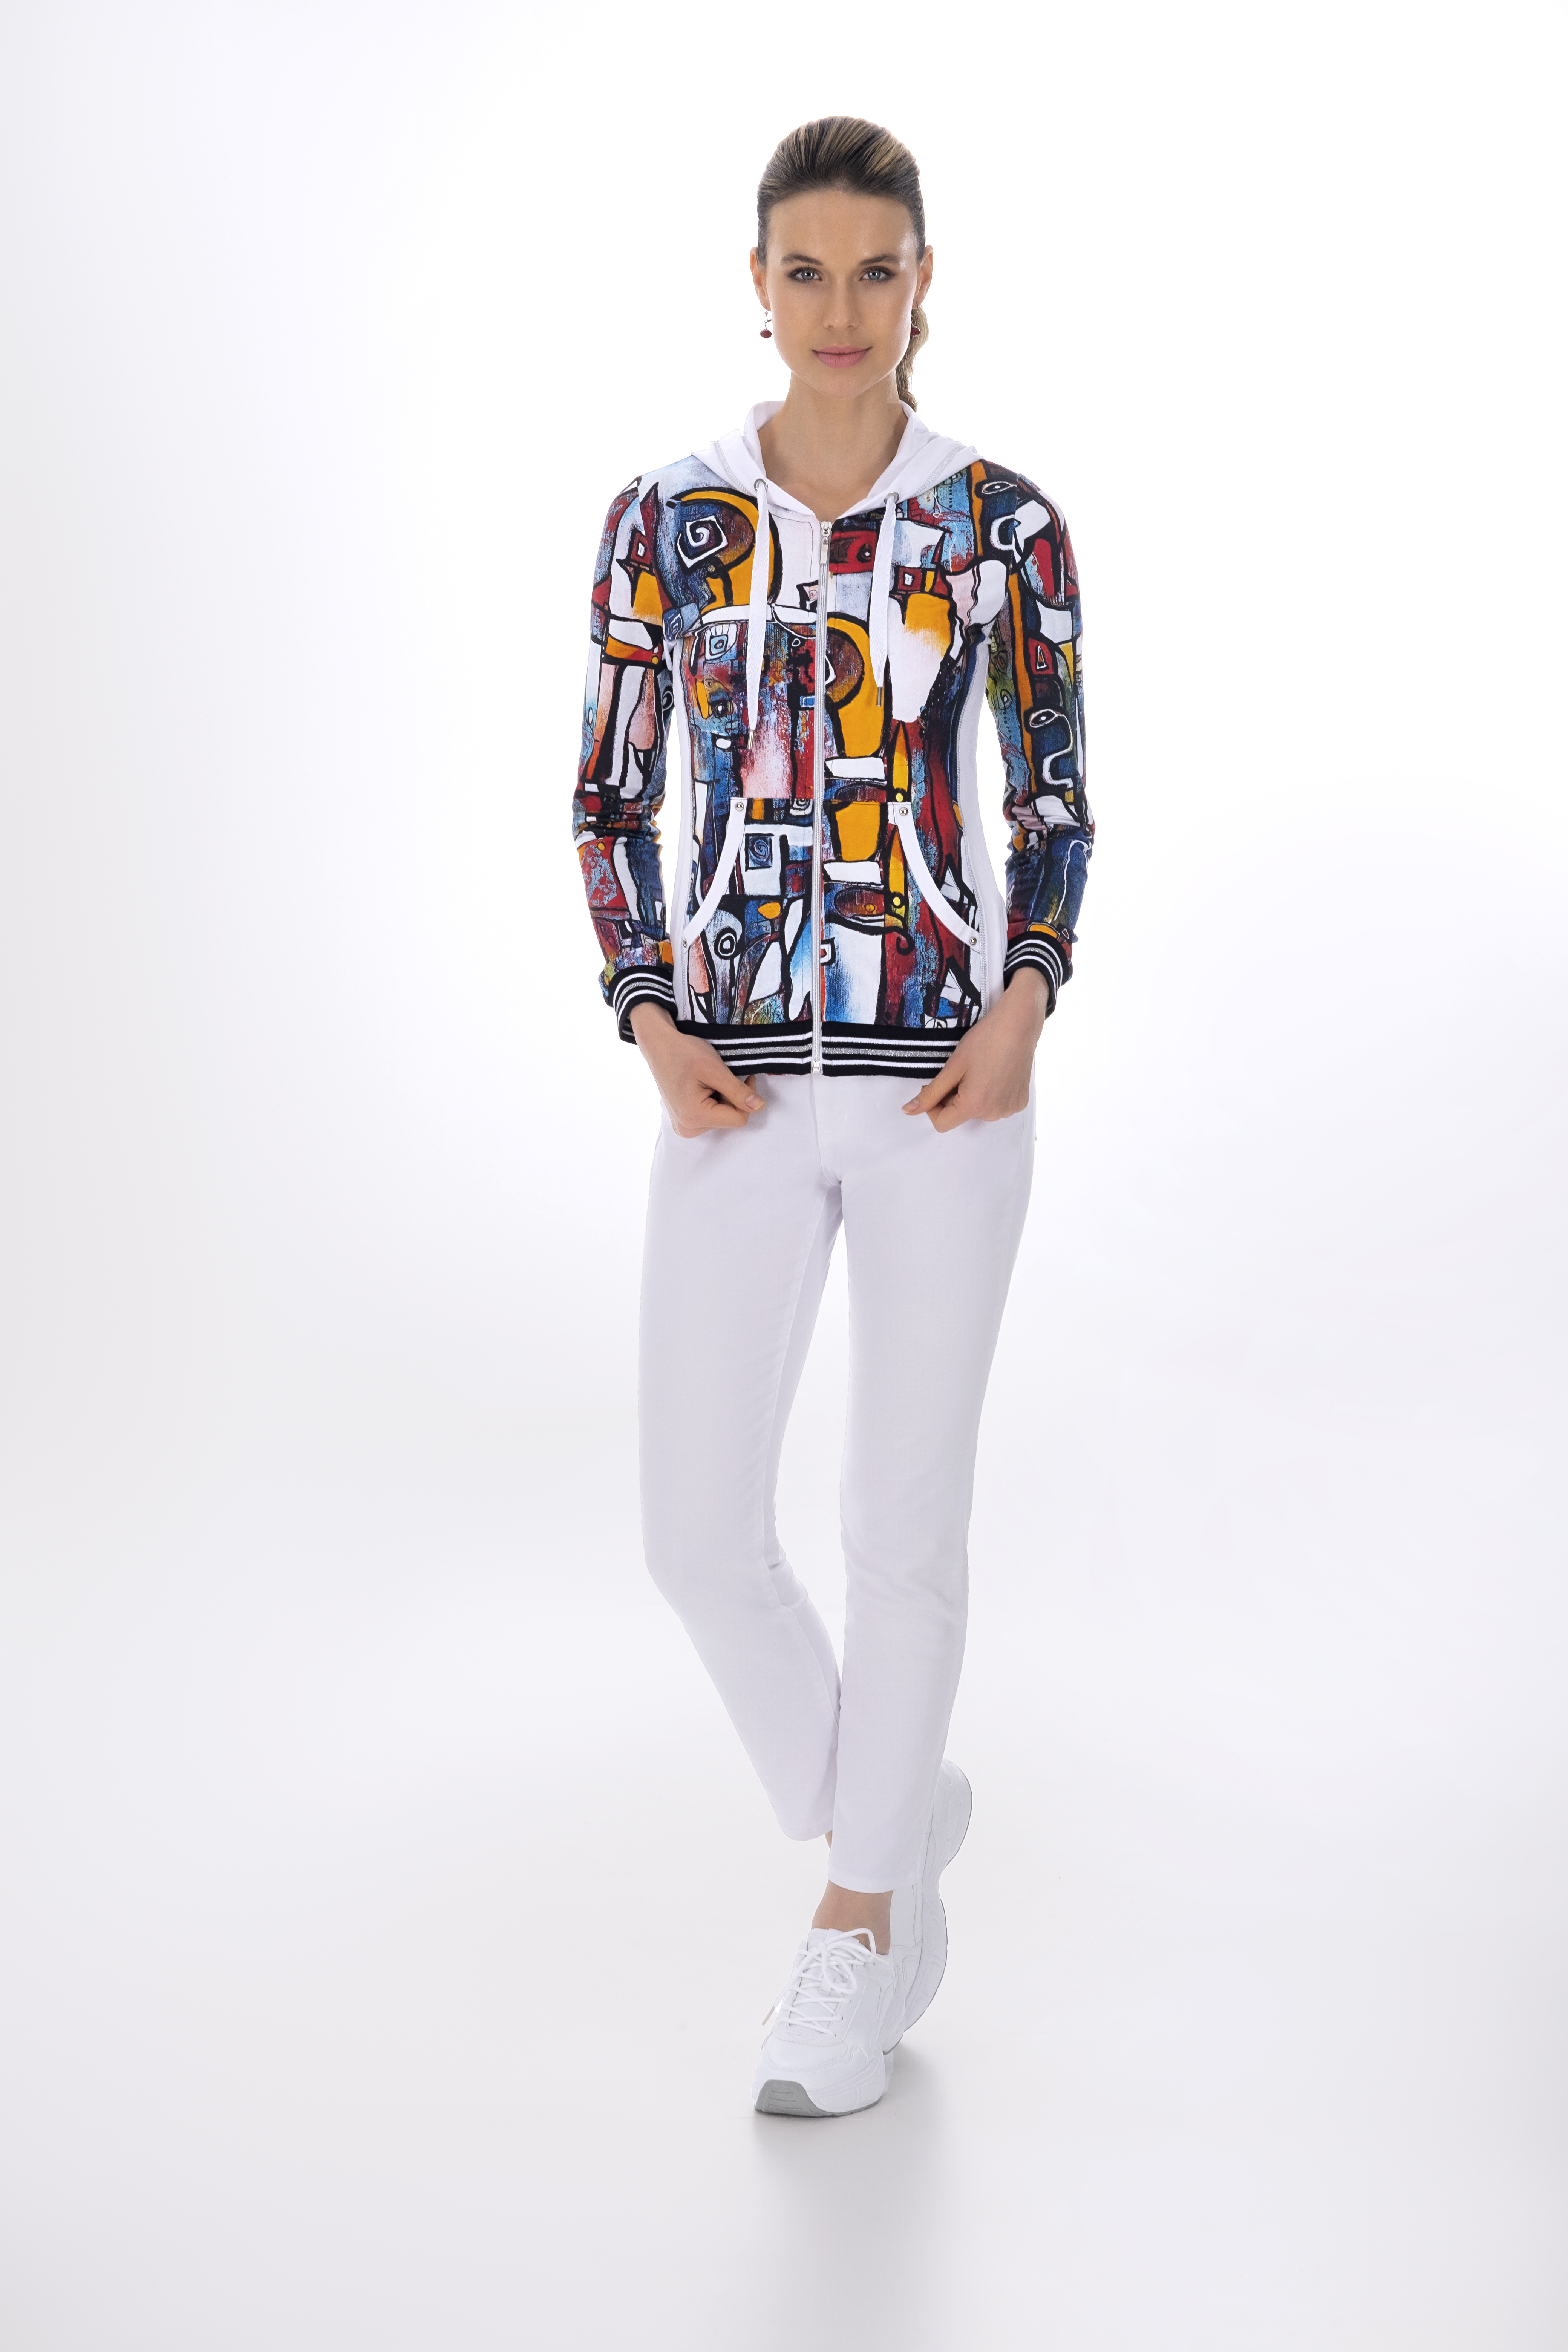 Simply Art Dolcezza: It's Complicated Crazy Cool Abstract Art Zip Up Hoodie (1 Left!)